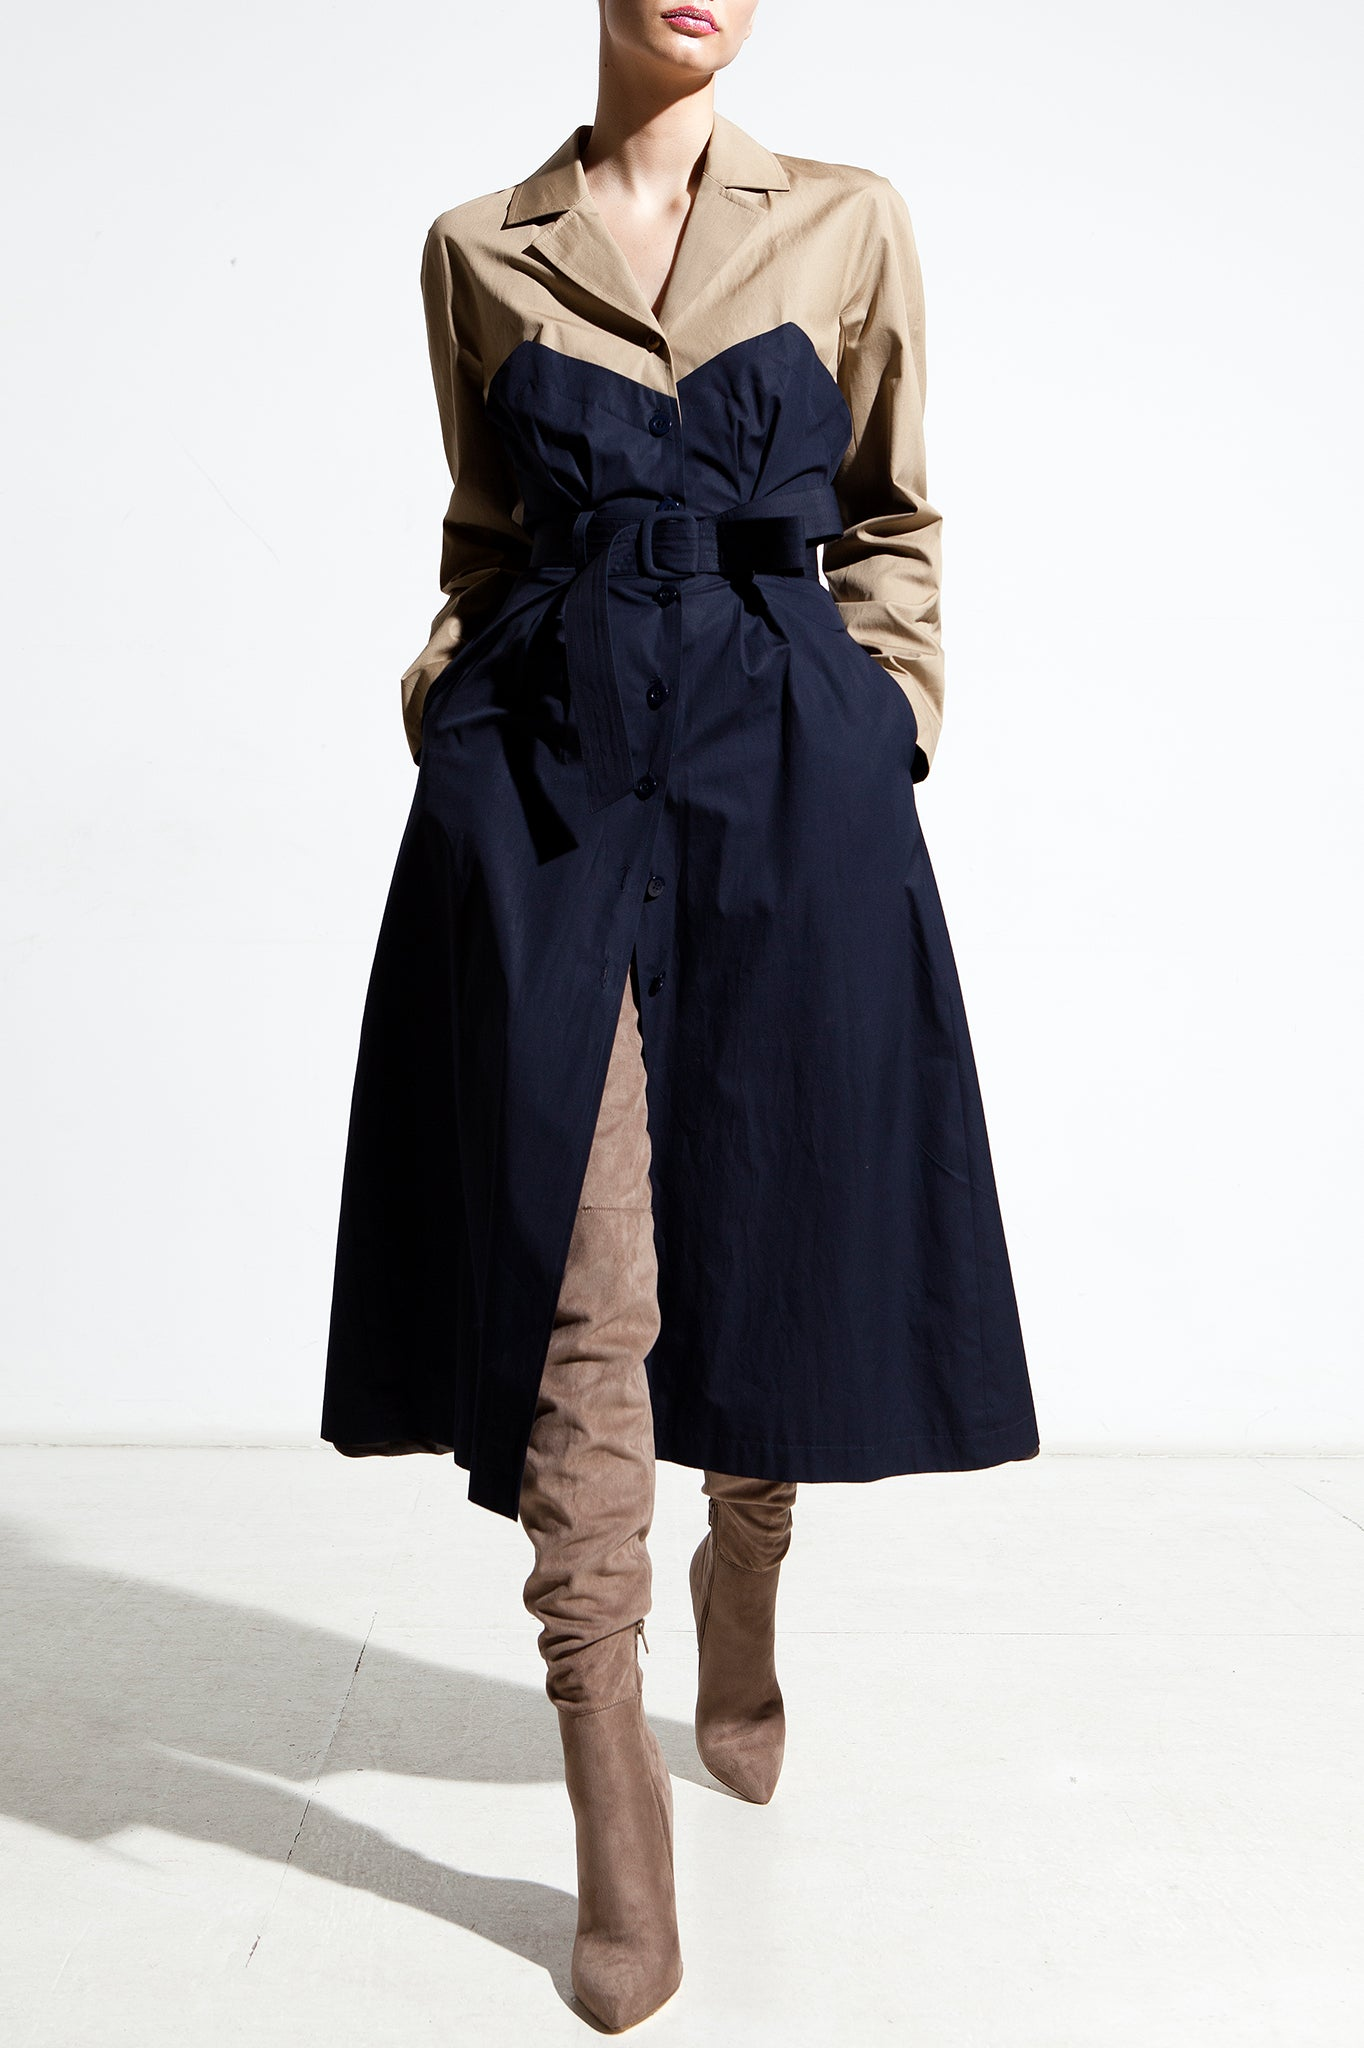 Trench Coat in Navy Blue and Khaki